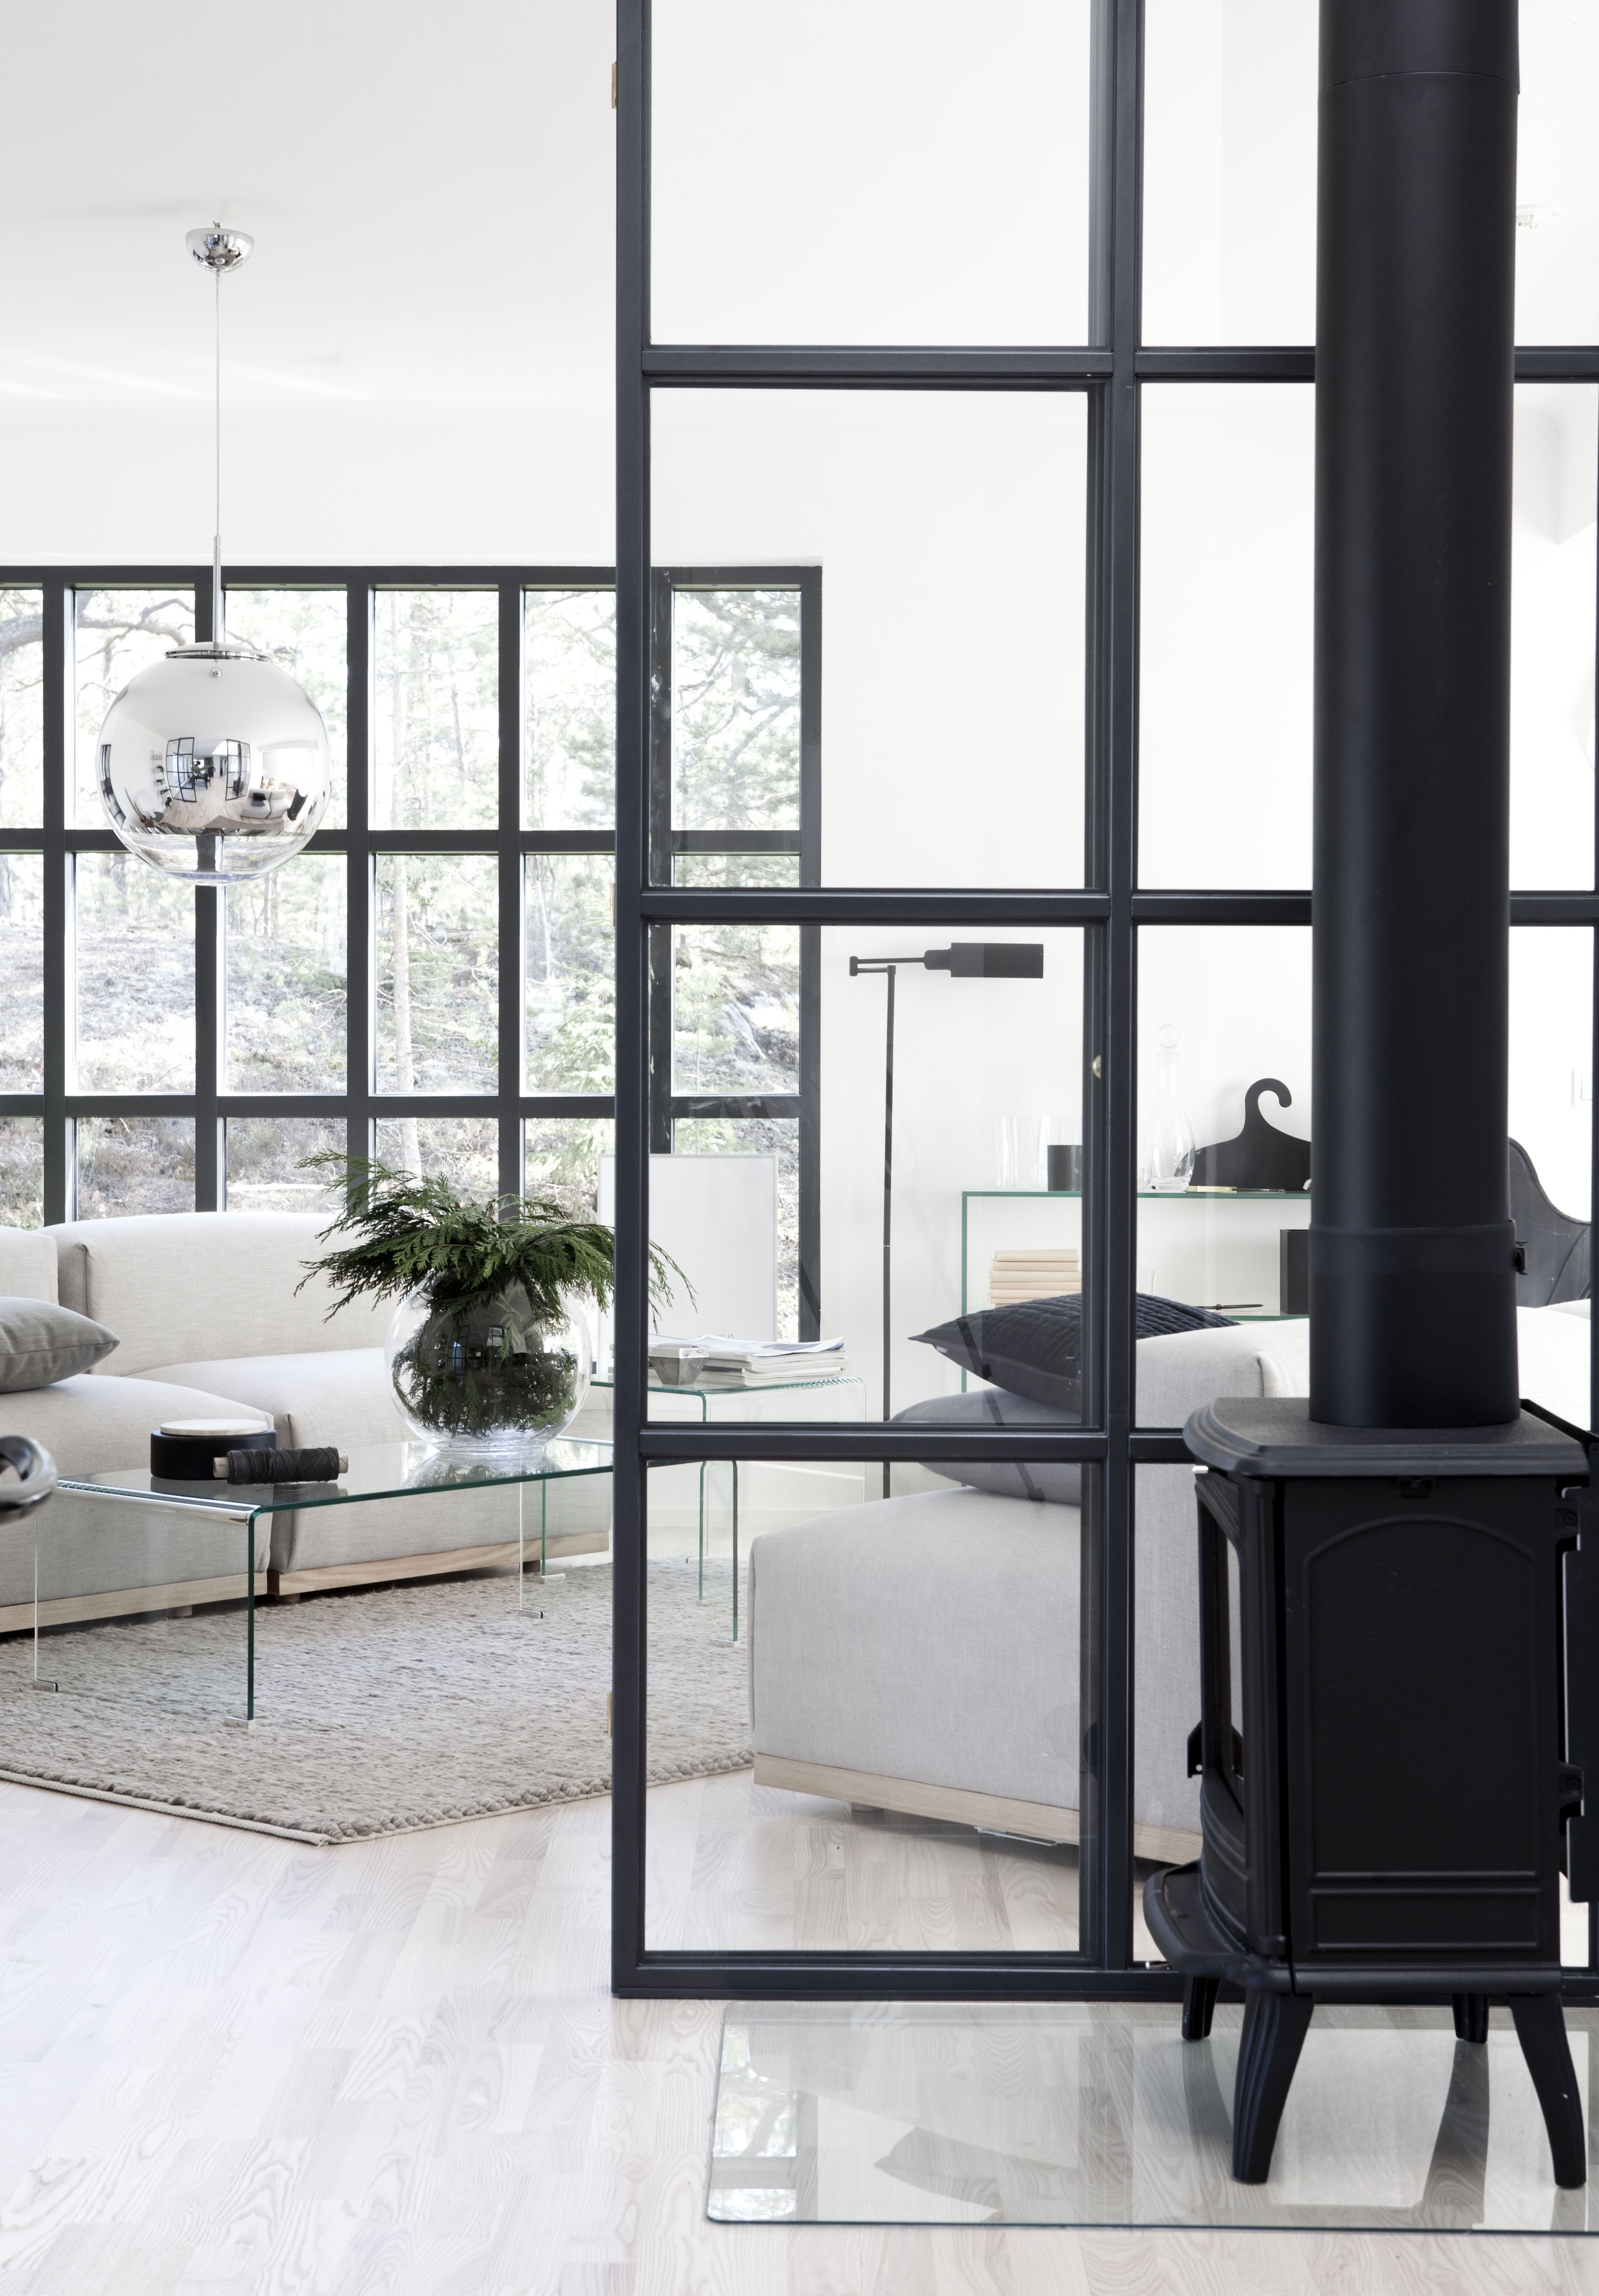 Industrial windows in house from BLOOC | BLOOC - Husprodukt Lone ...